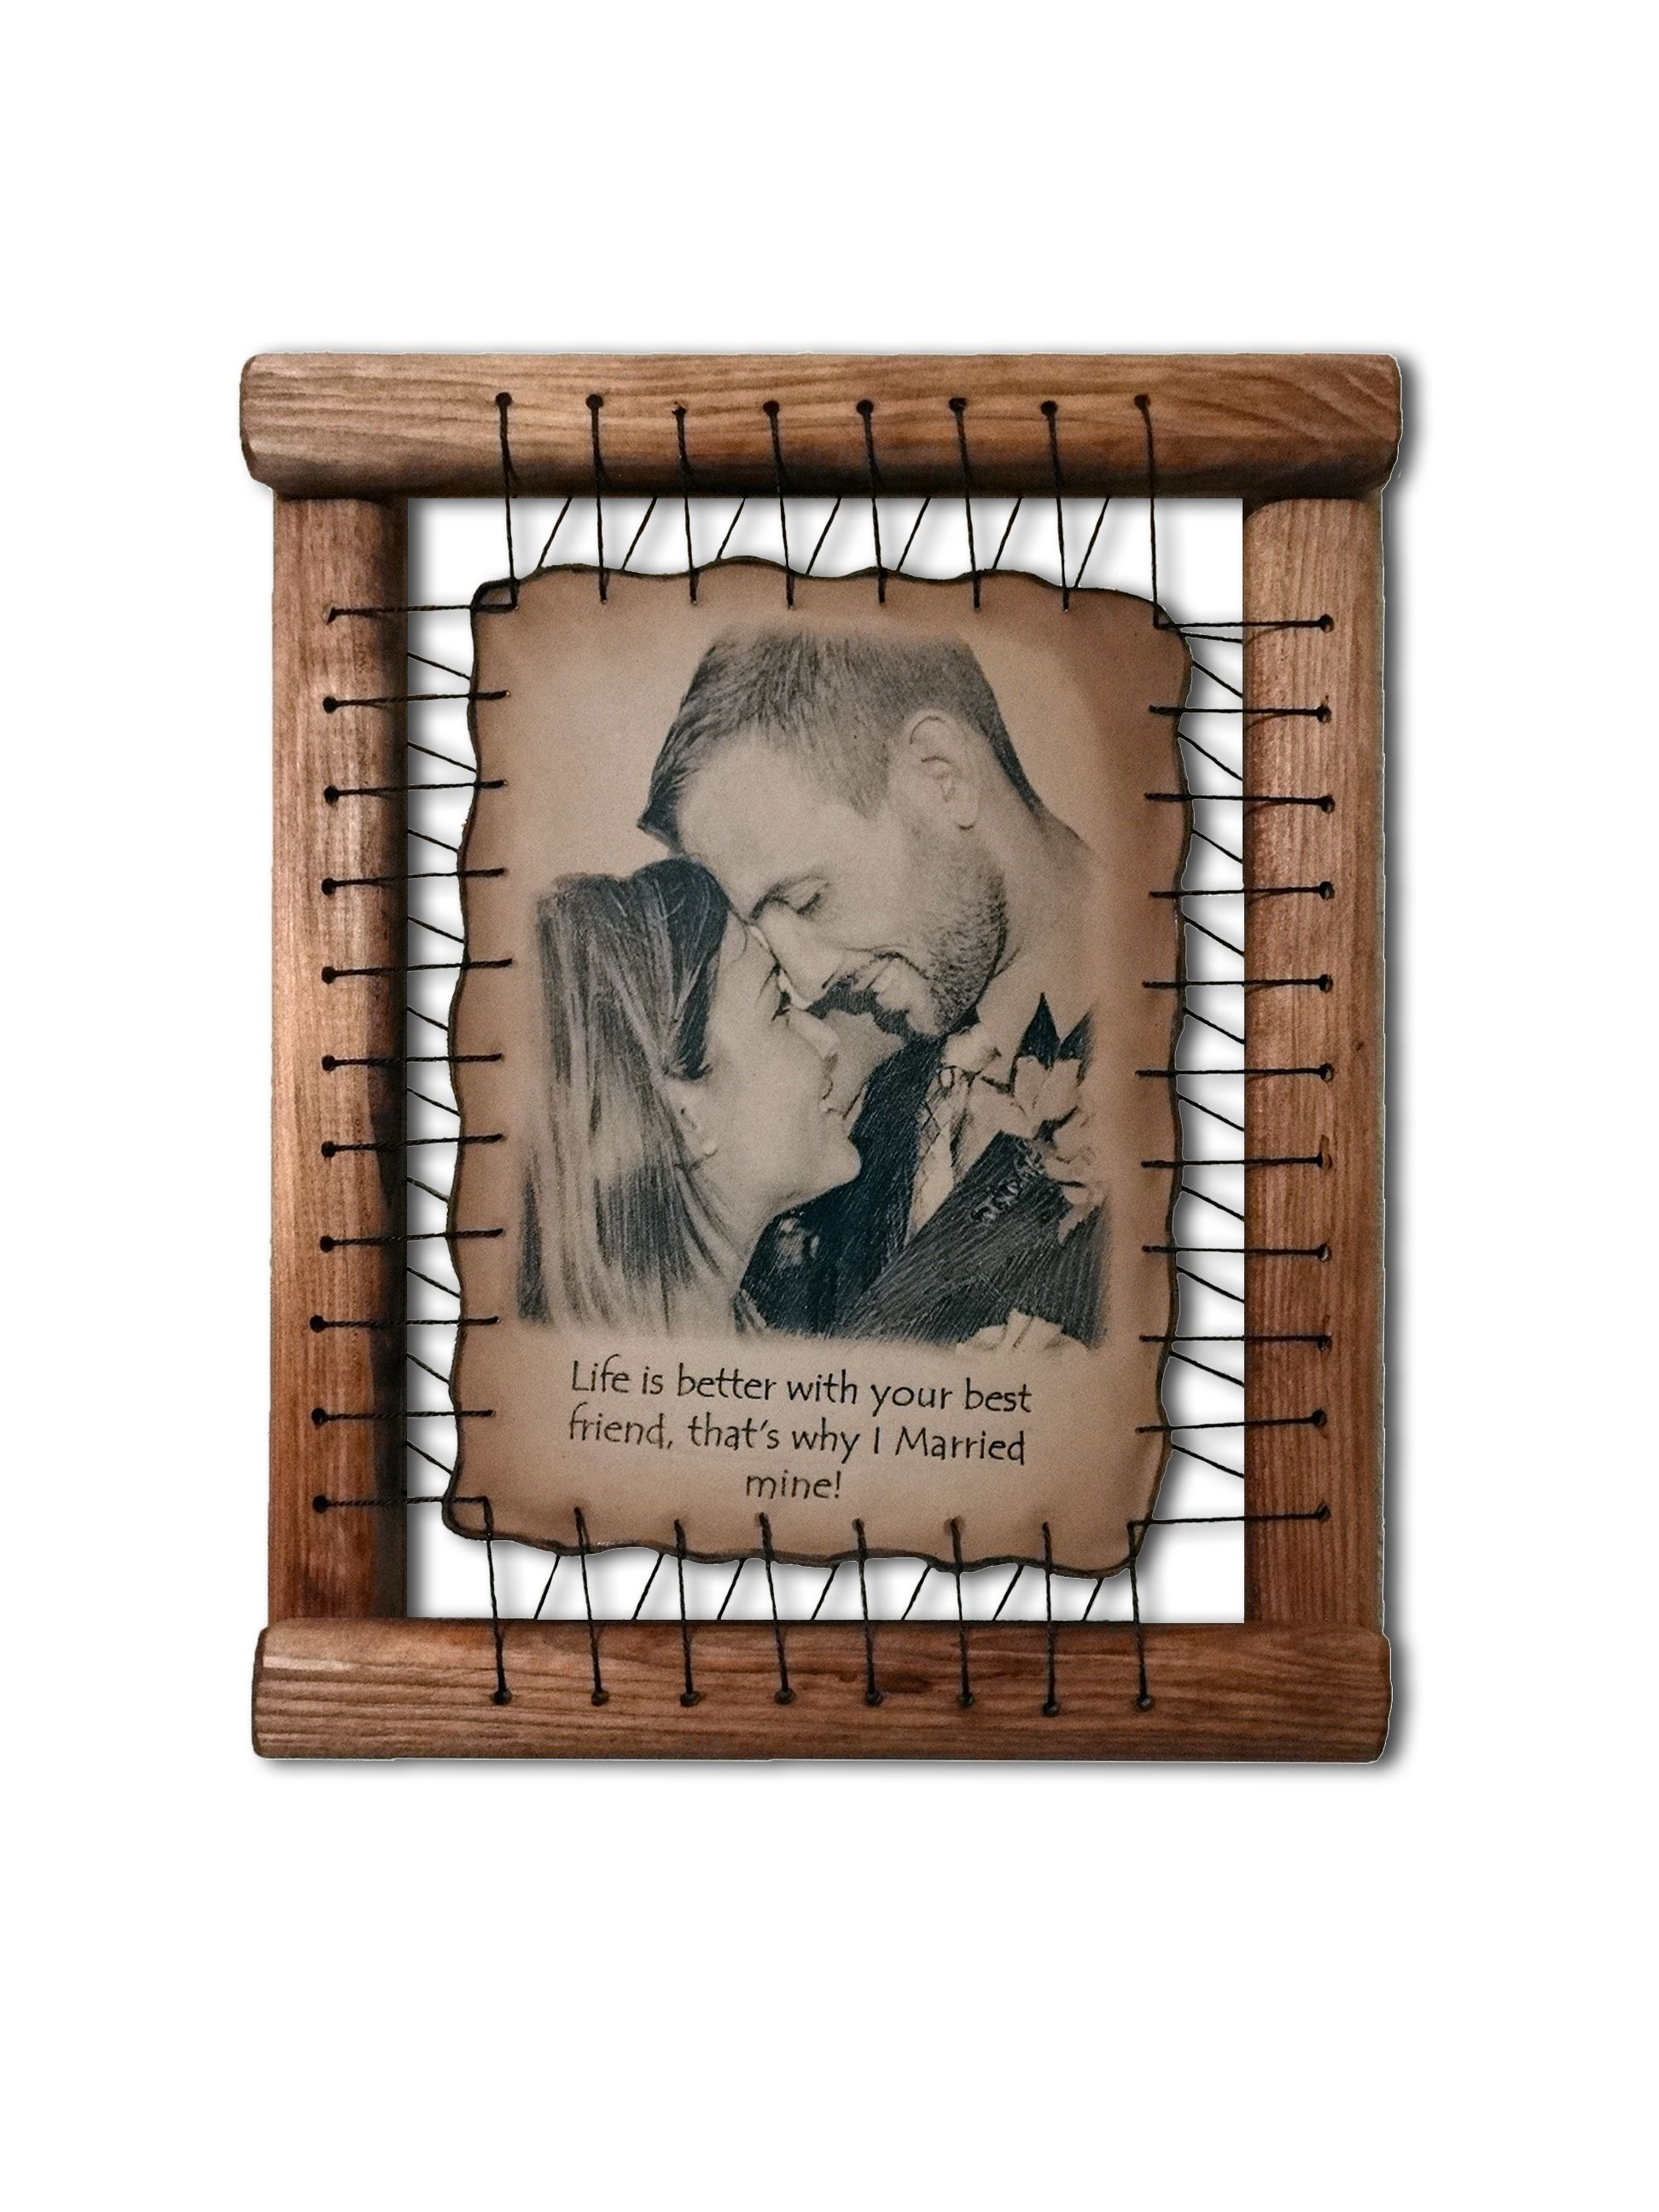 Leather anniversary gifts for husband rare hand drawn pyrography leather anniversary gifts for husband jeuxipadfo Image collections